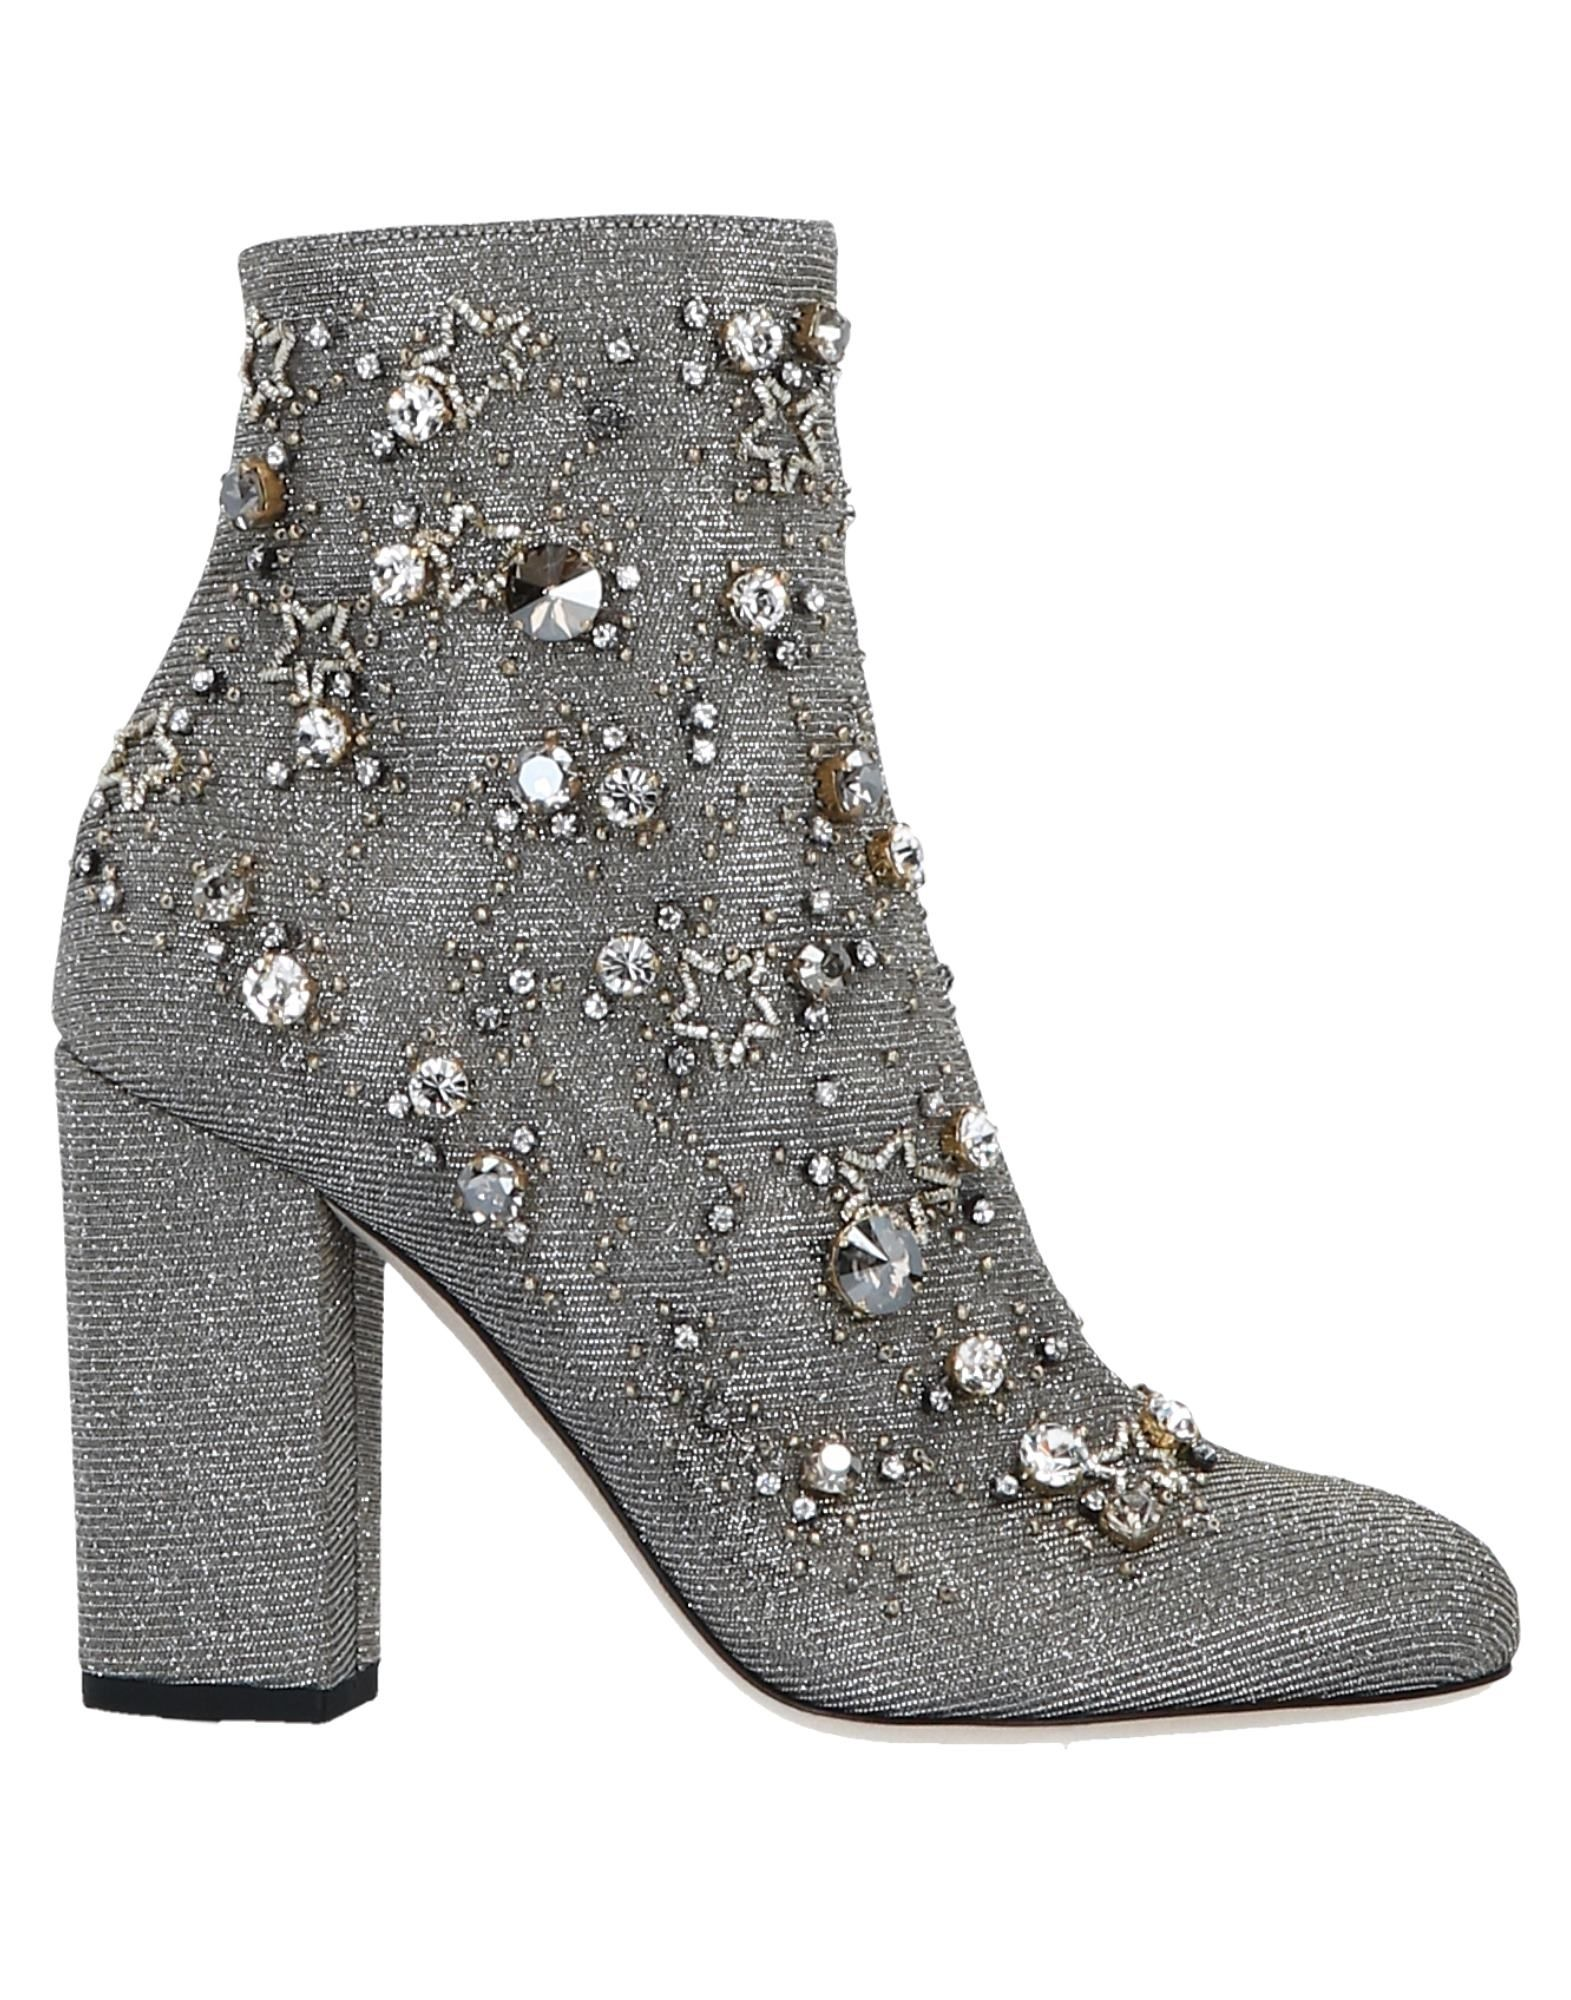 GEDEBE Ankle Boots in Silver